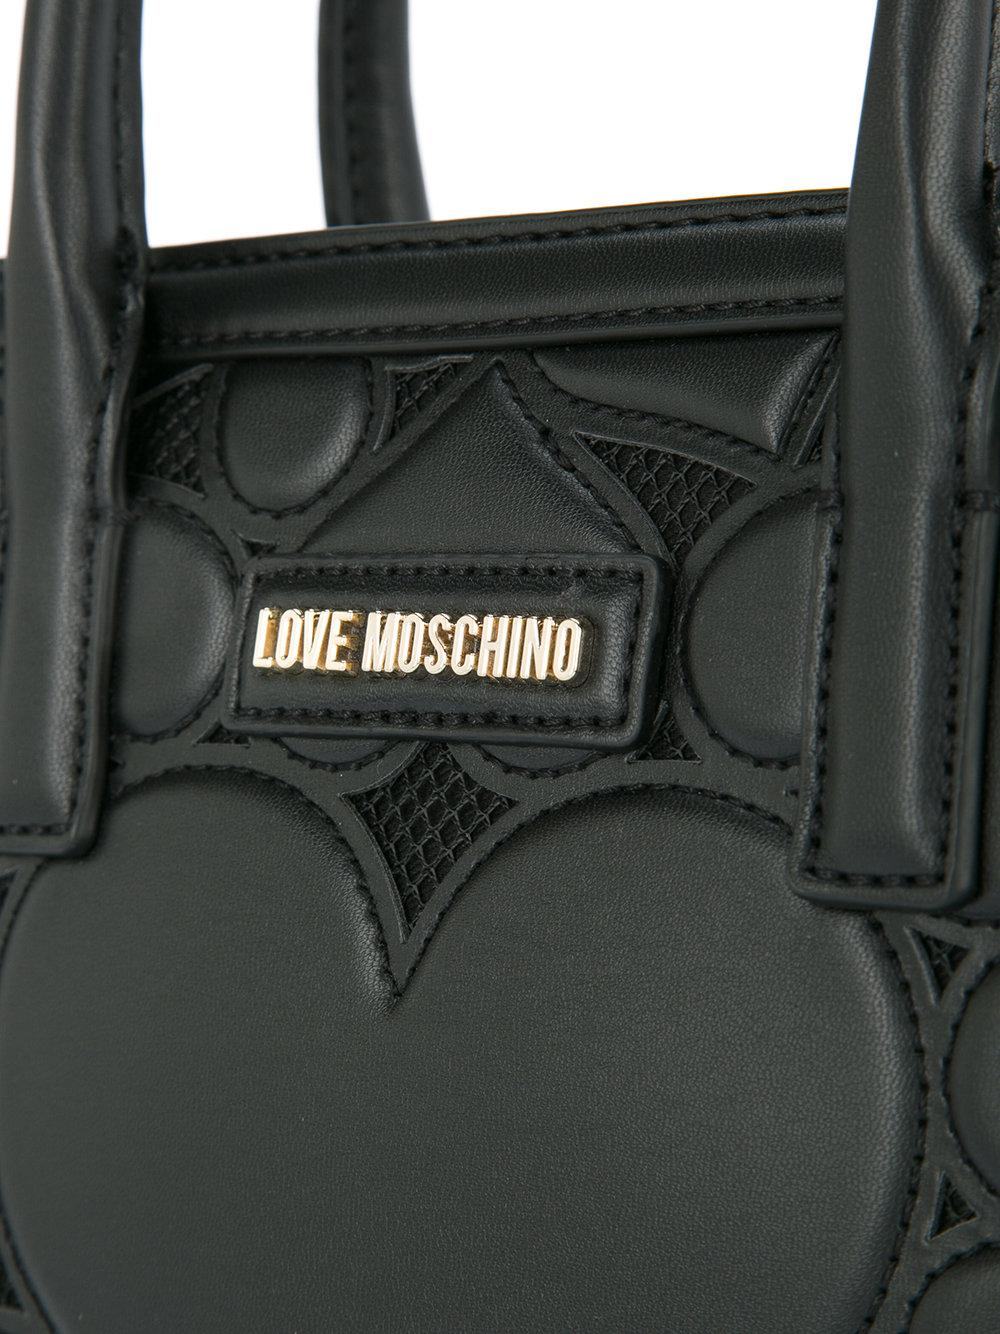 Love Moschino Heart-embroidered Tote in Black